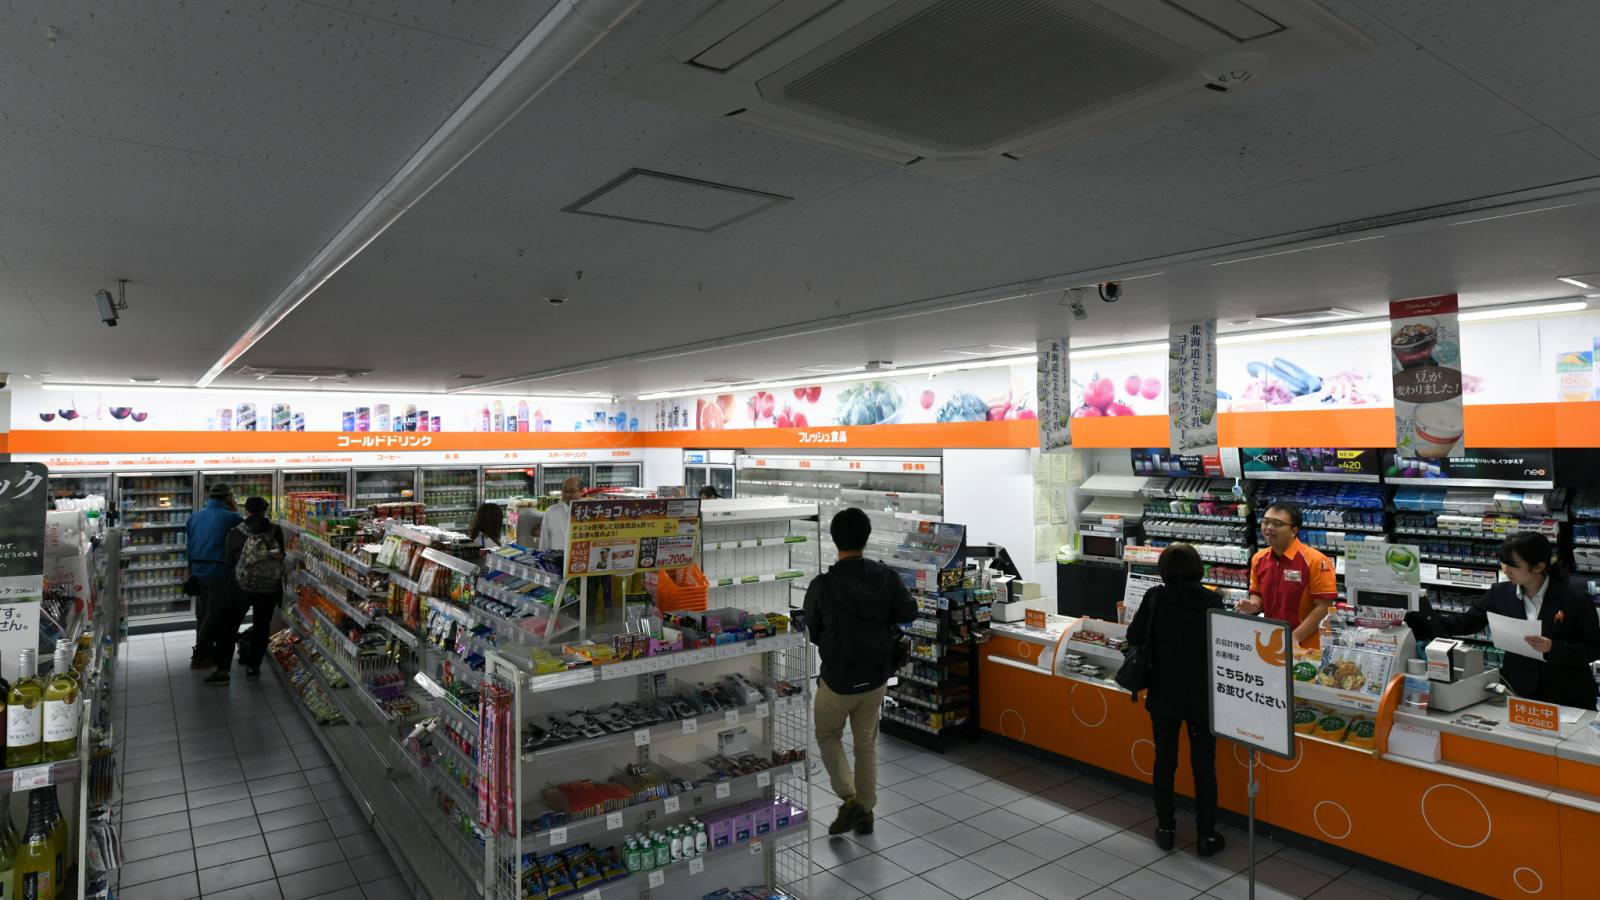 A half-lit Seicomart convenience store in Hokkaido. Operator Secoma is reducing lighting at its locations in response to a government request for businesses to limit their power consumption.